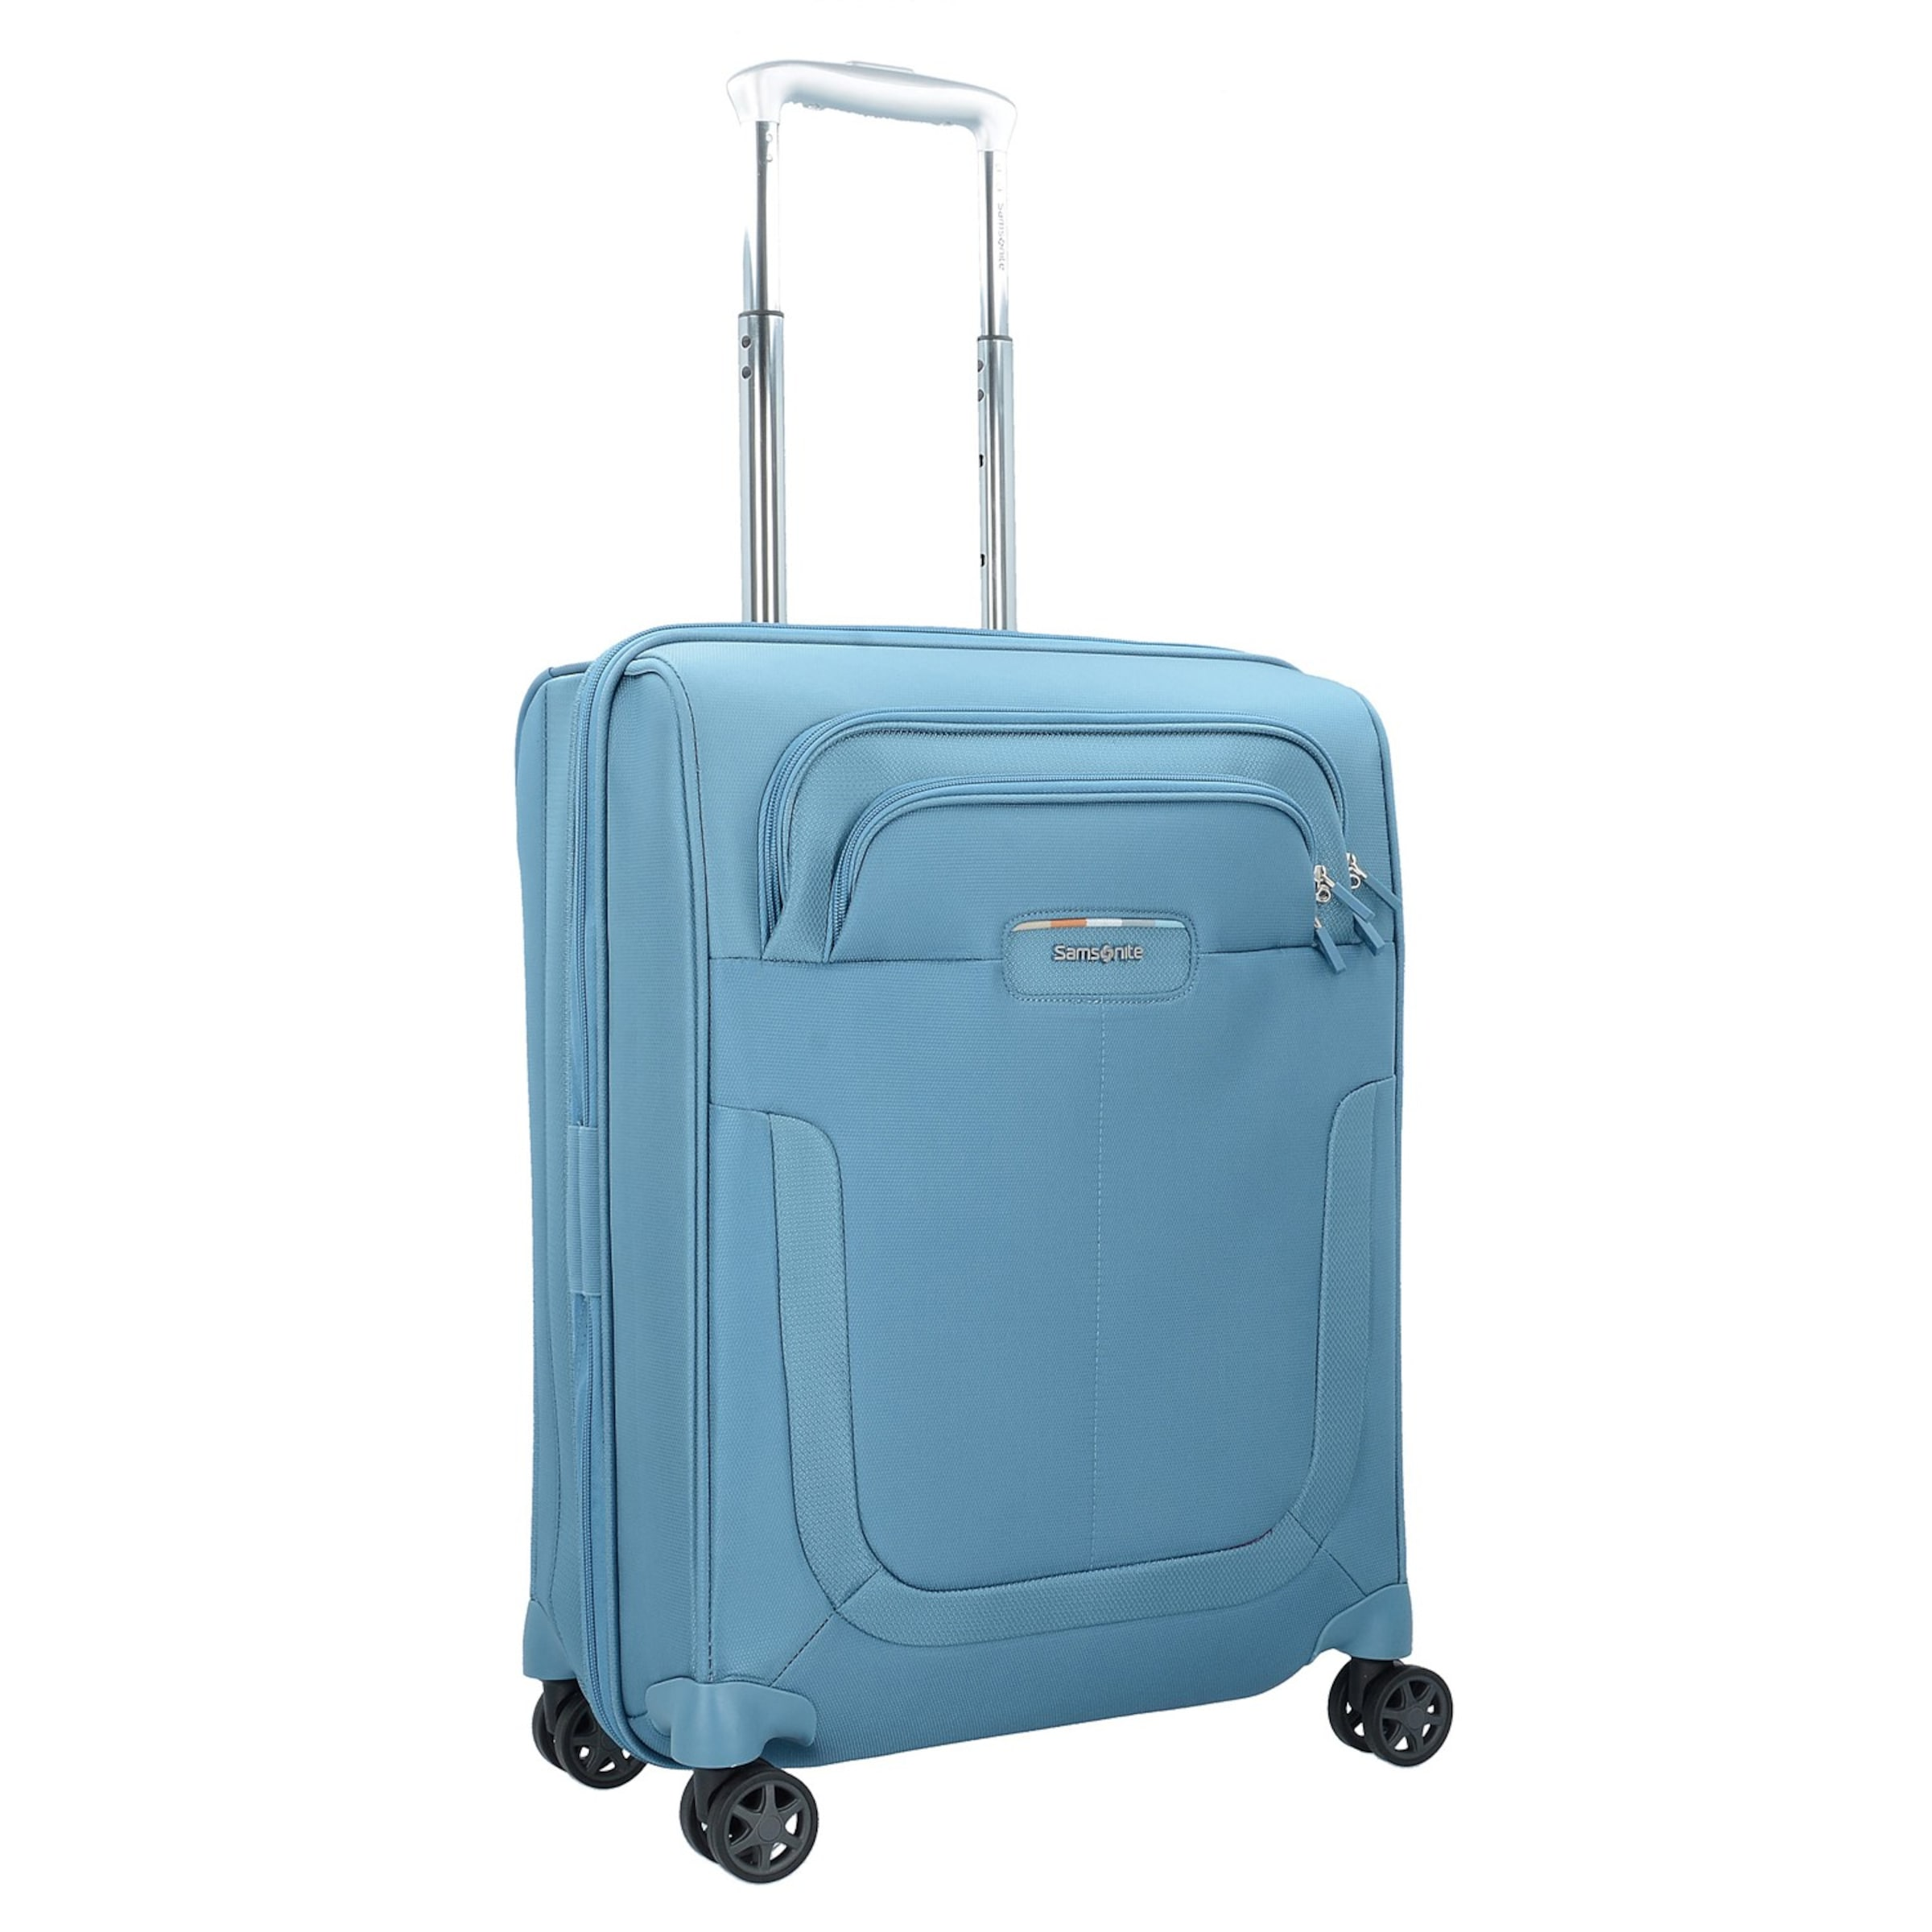 Trolley In Hellblau Samsonite Samsonite Trolley Samsonite Hellblau Trolley In erxdBCo